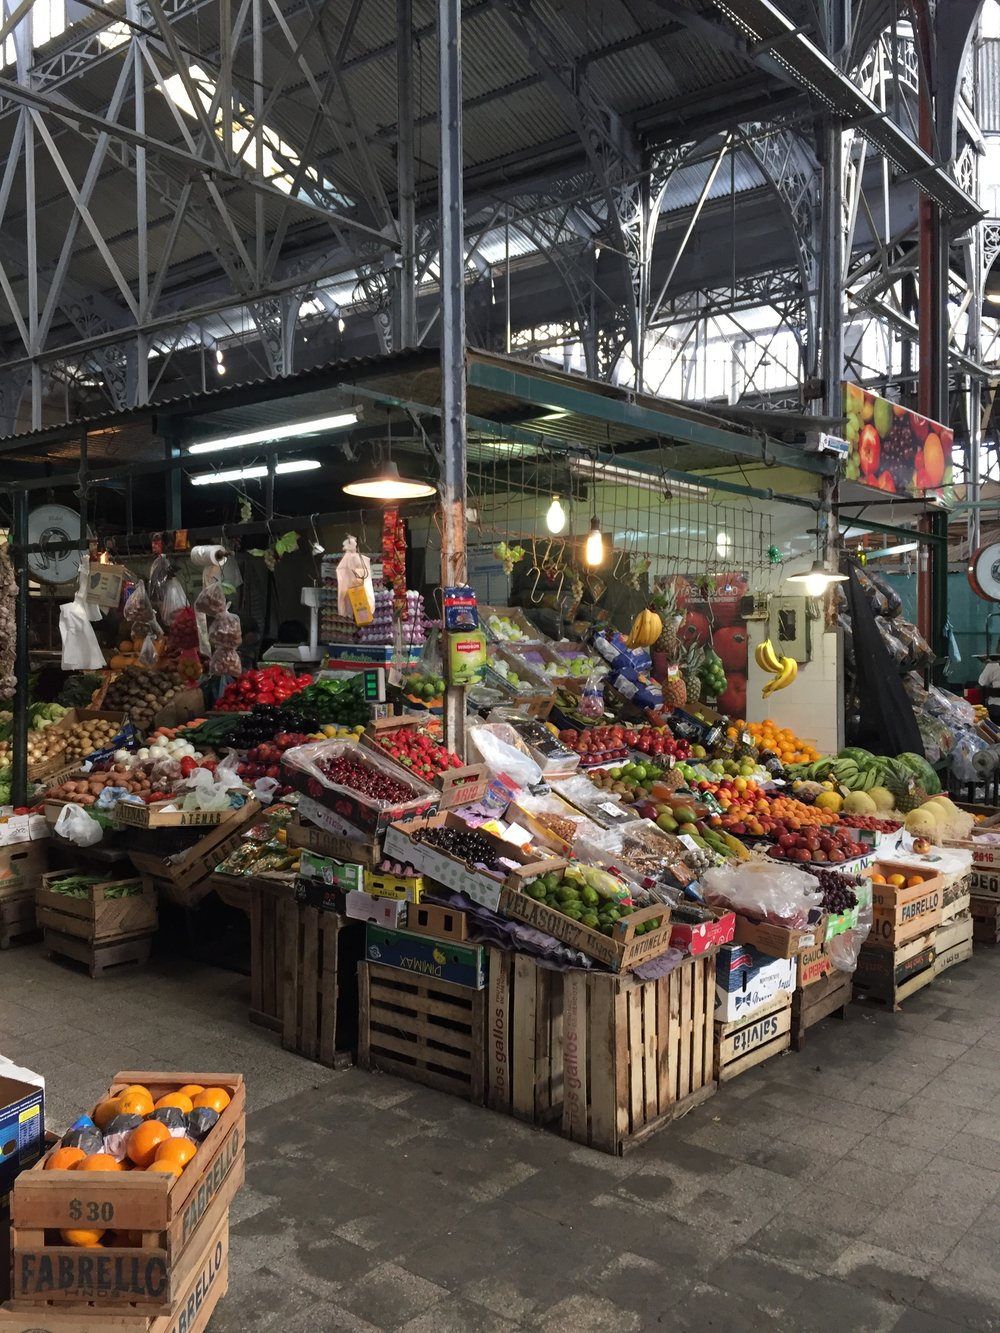 A fruit stand found in one of San Telmo's markets.